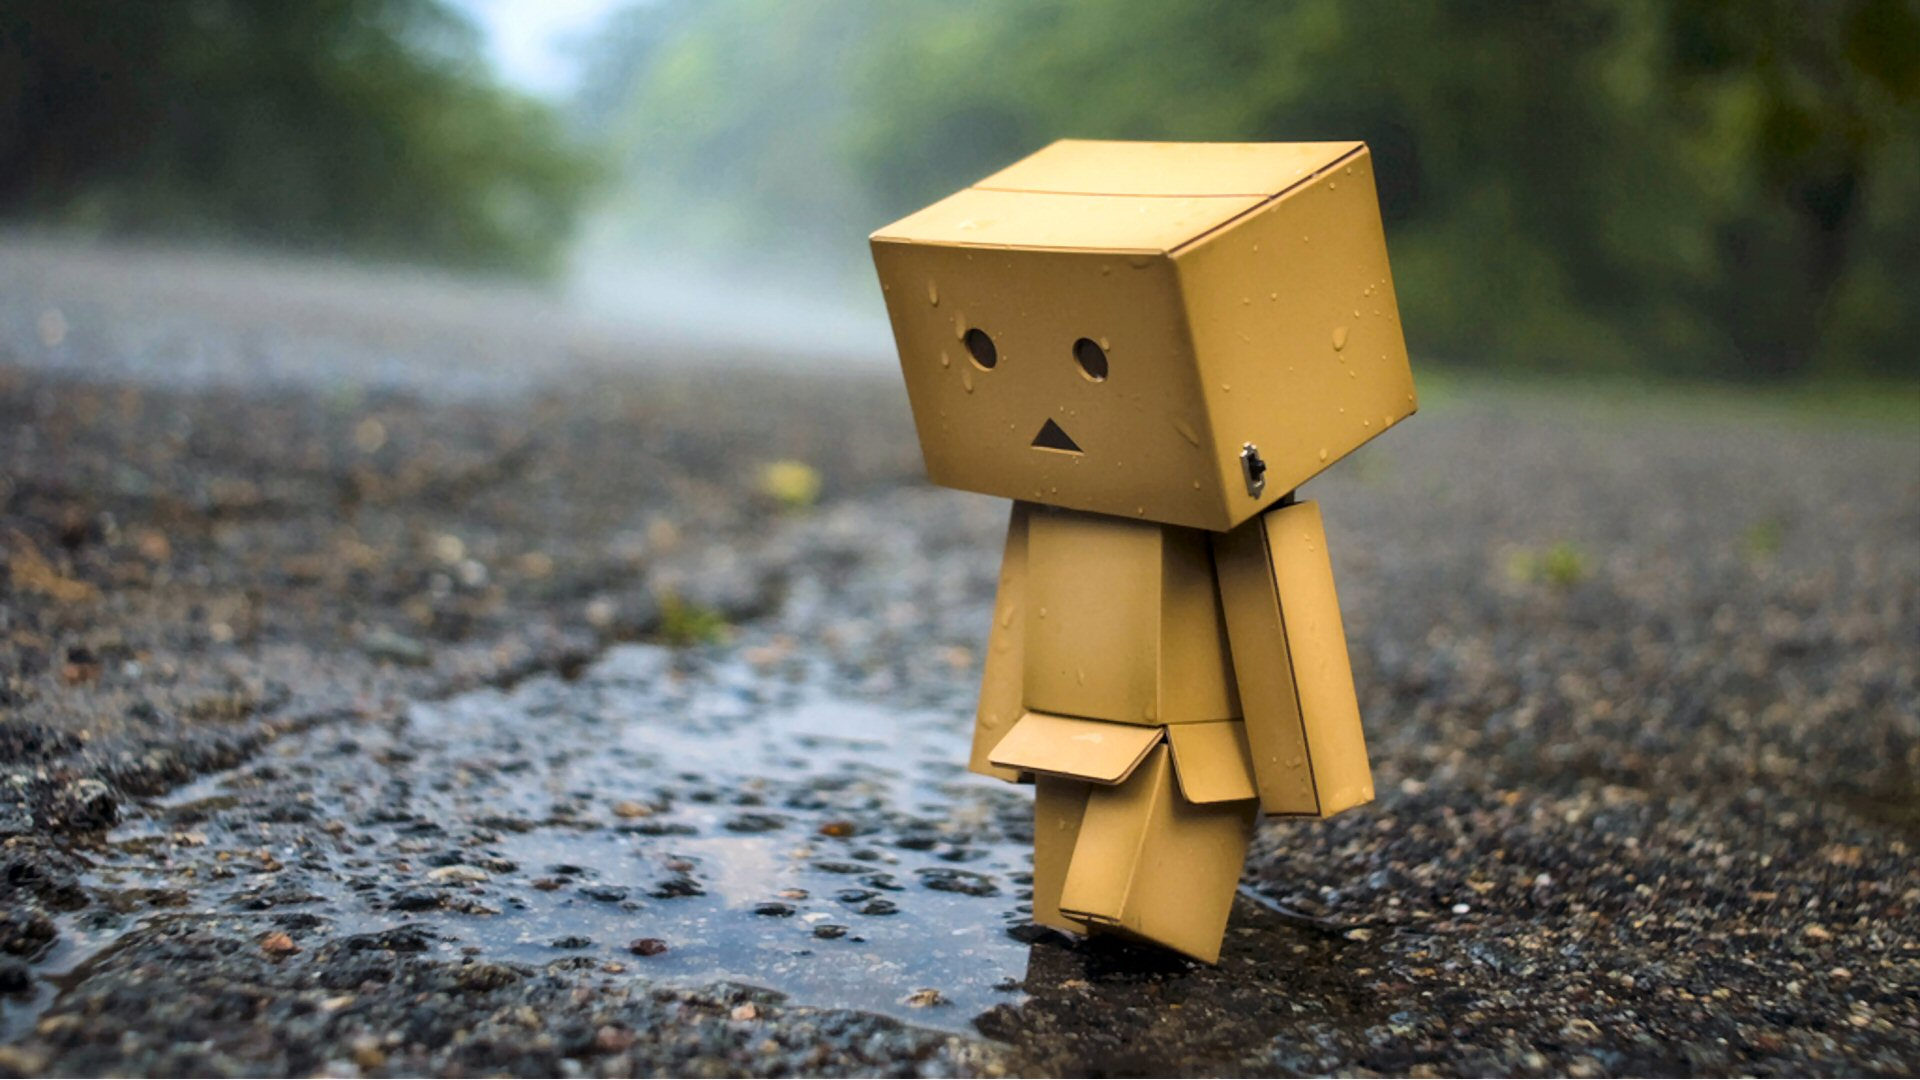 Download Rainy Danbo Wallpapers Rainy Danbo Myspace Backgrounds 1920x1080